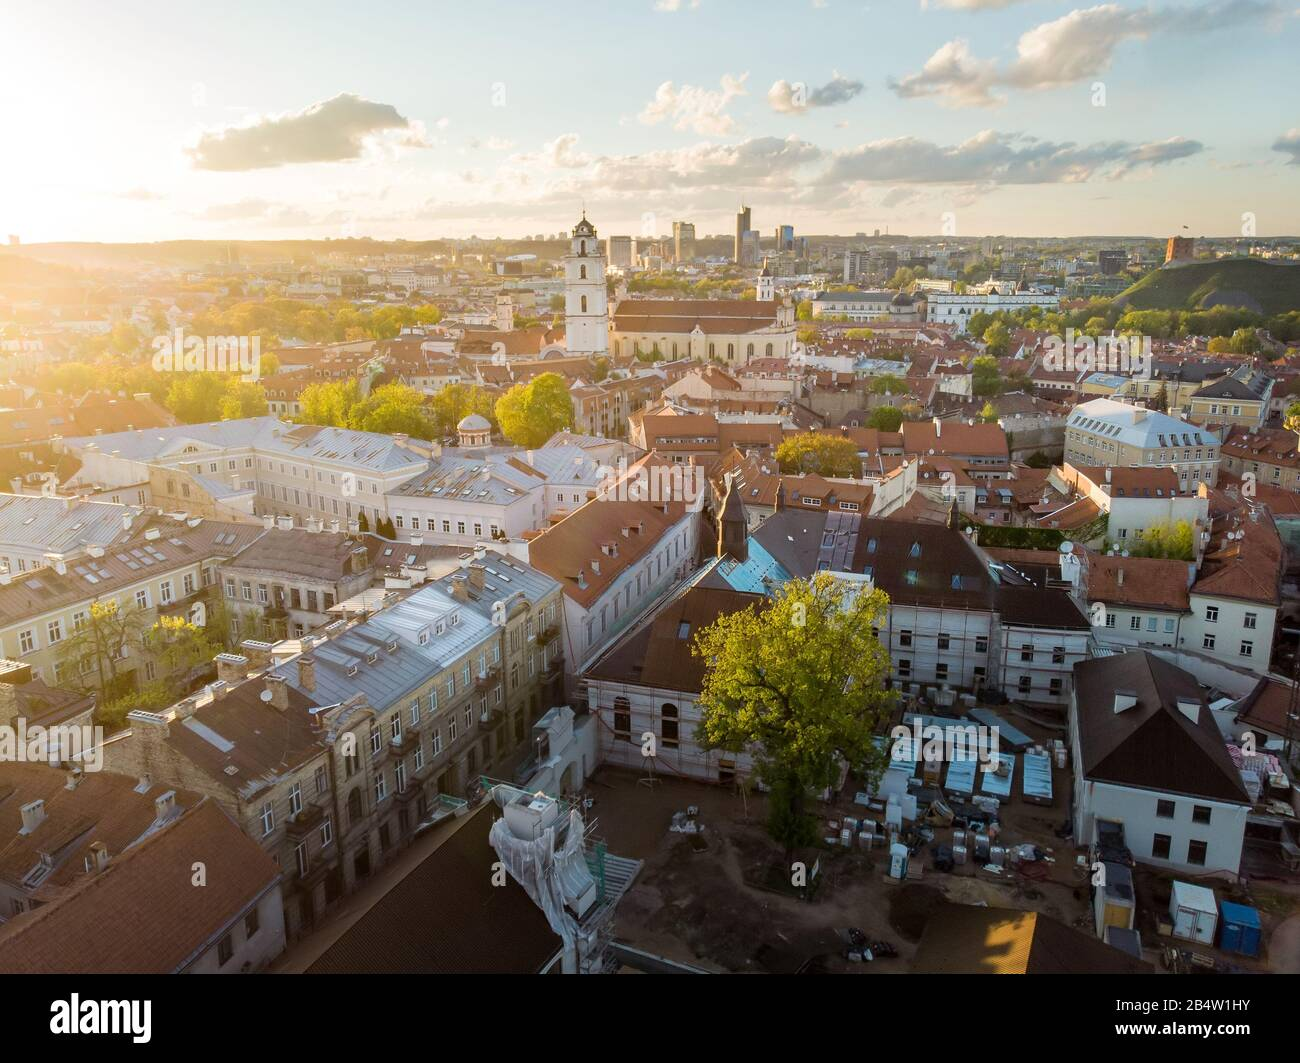 Aerial view of Vilnius Old Town, one of the largest surviving medieval old towns in Northern Europe. Summer landscape of UNESCO-inscribed Old Town of Stock Photo